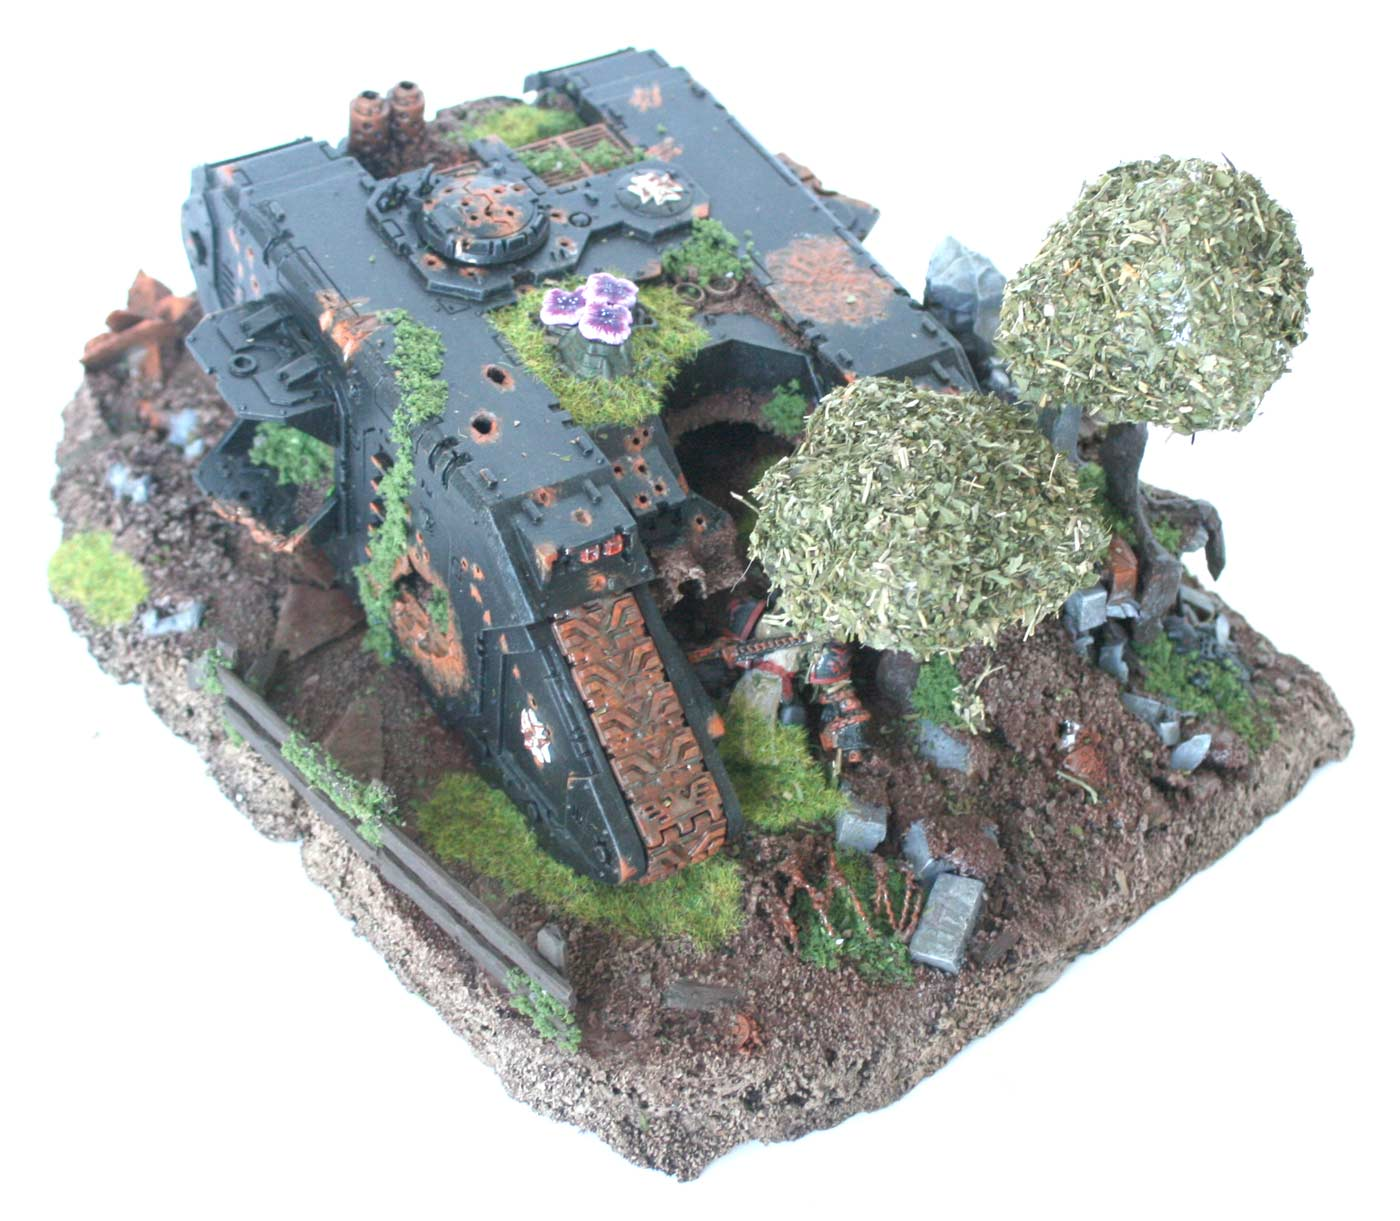 Warhammer for Decor 40k